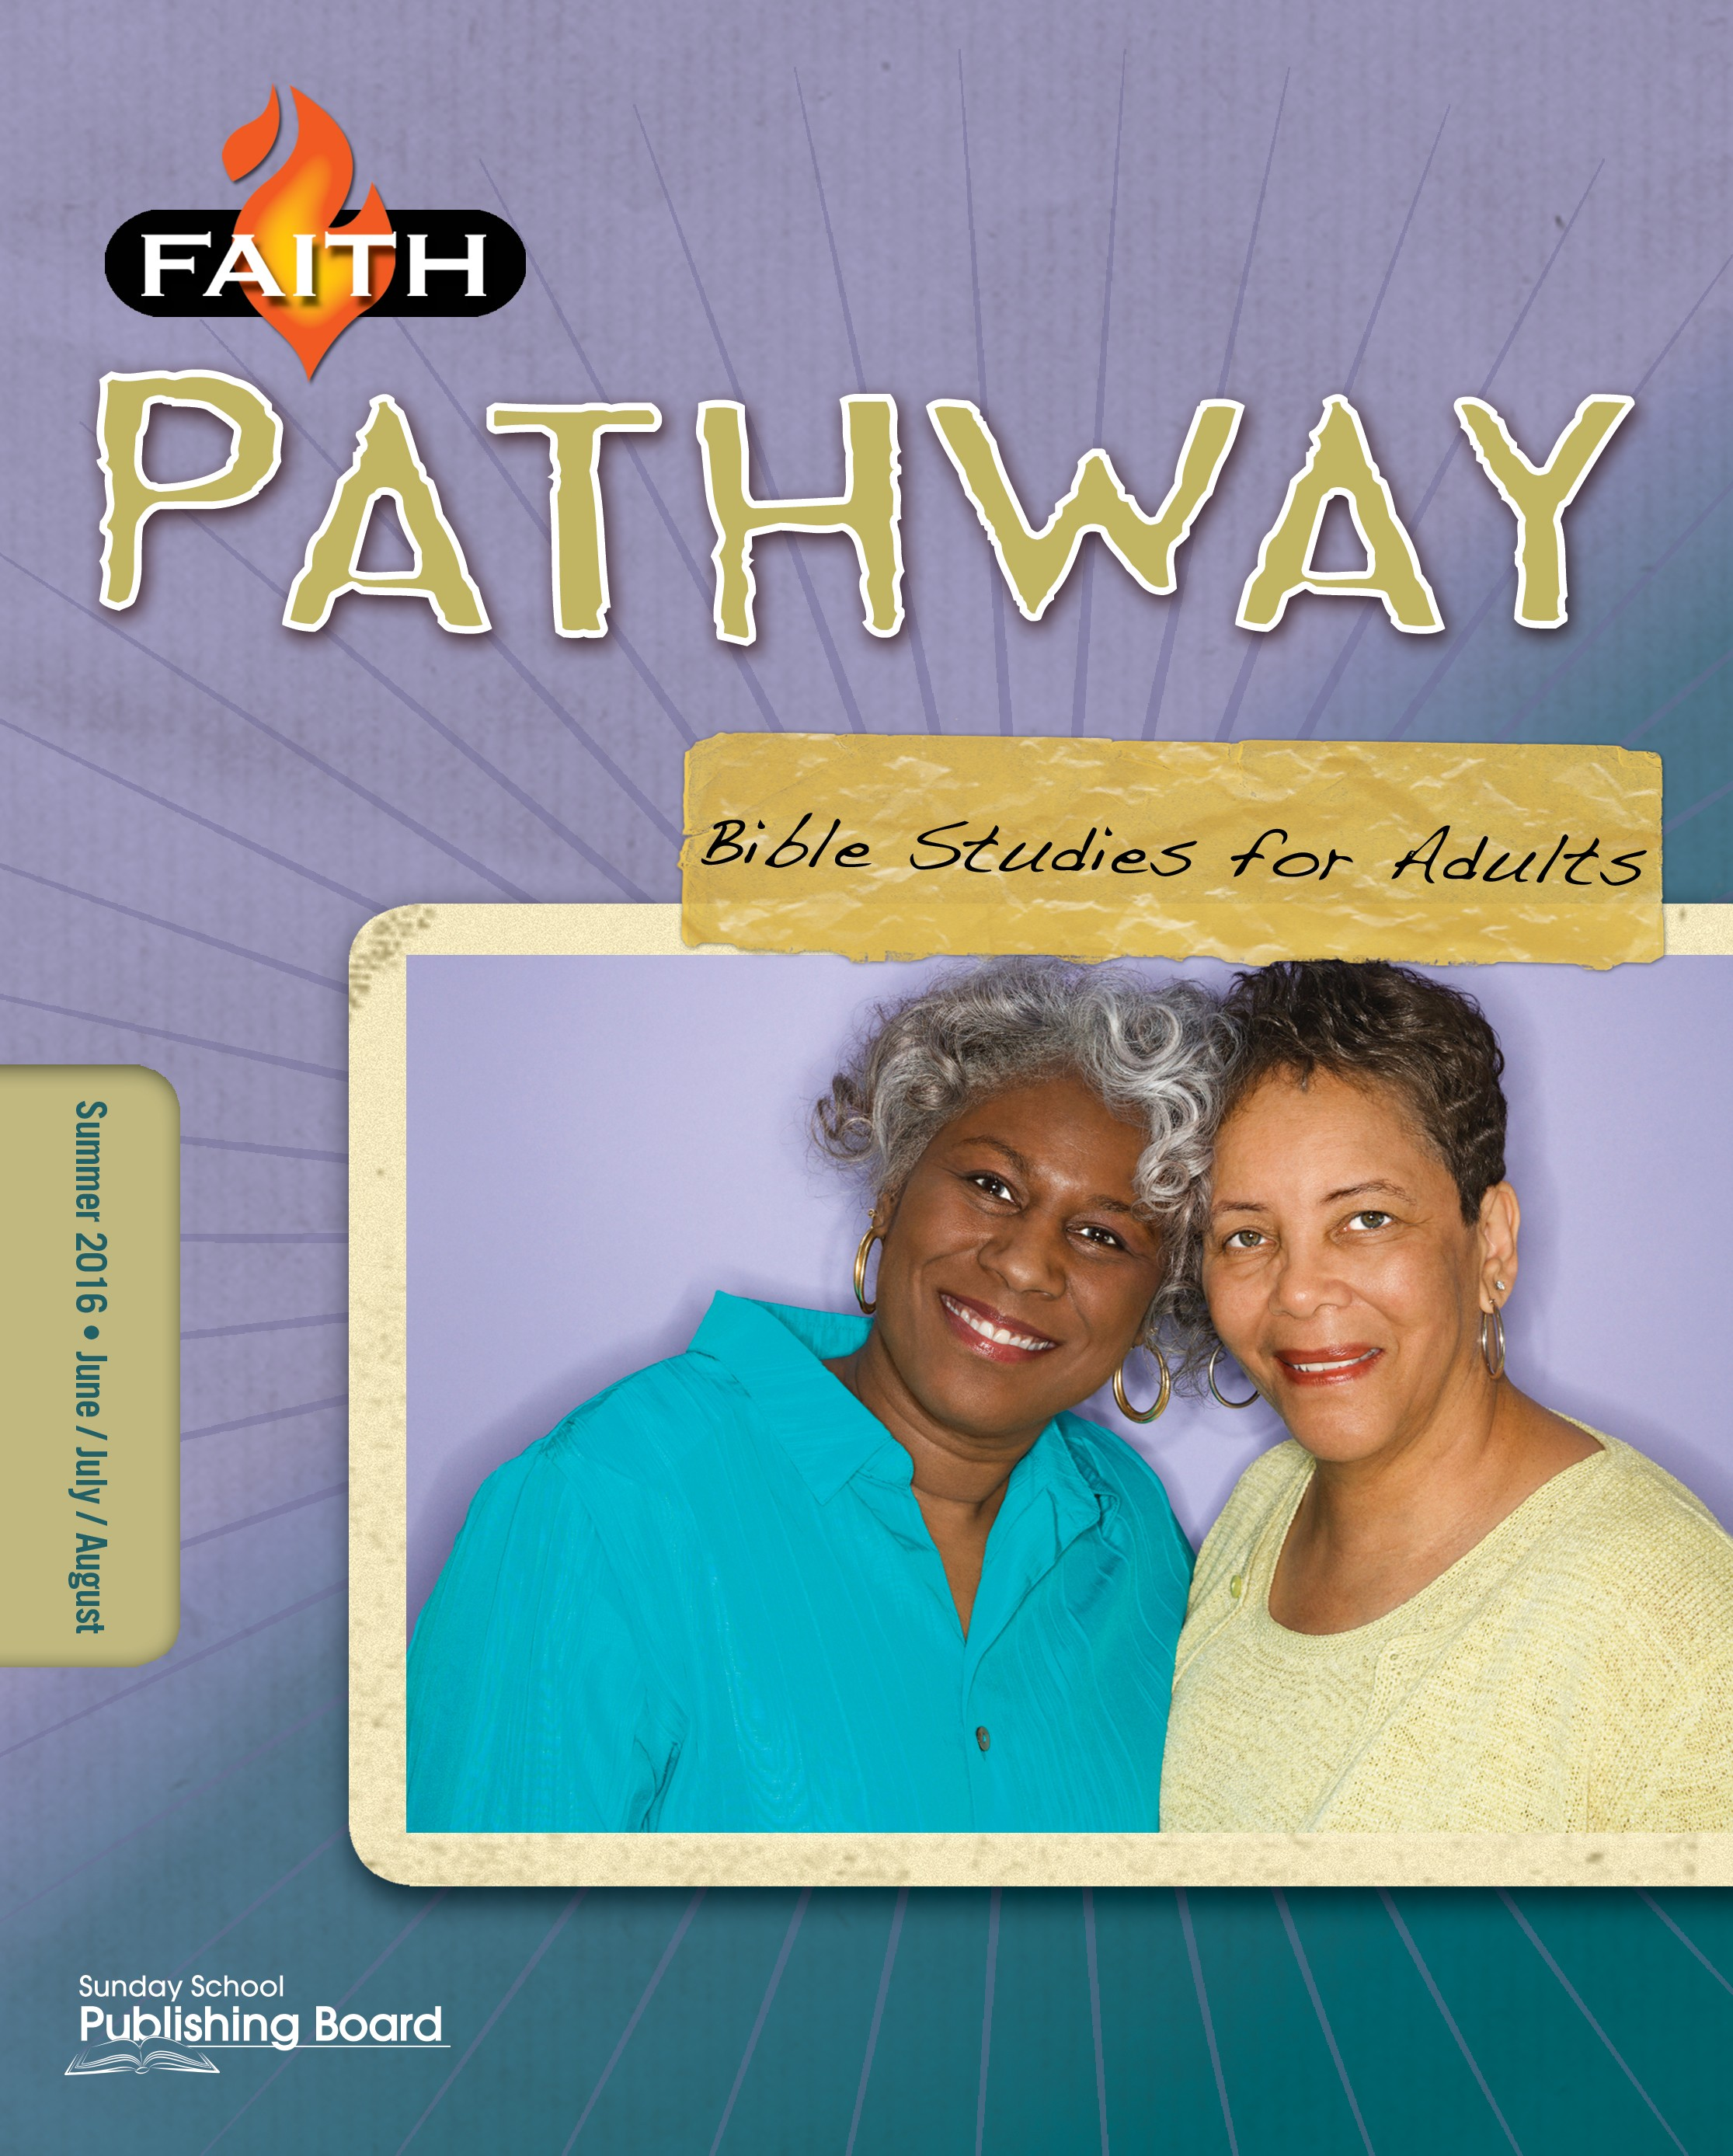 Faith Pathway - Bible Studies for Adults (Ages 35 & Above)